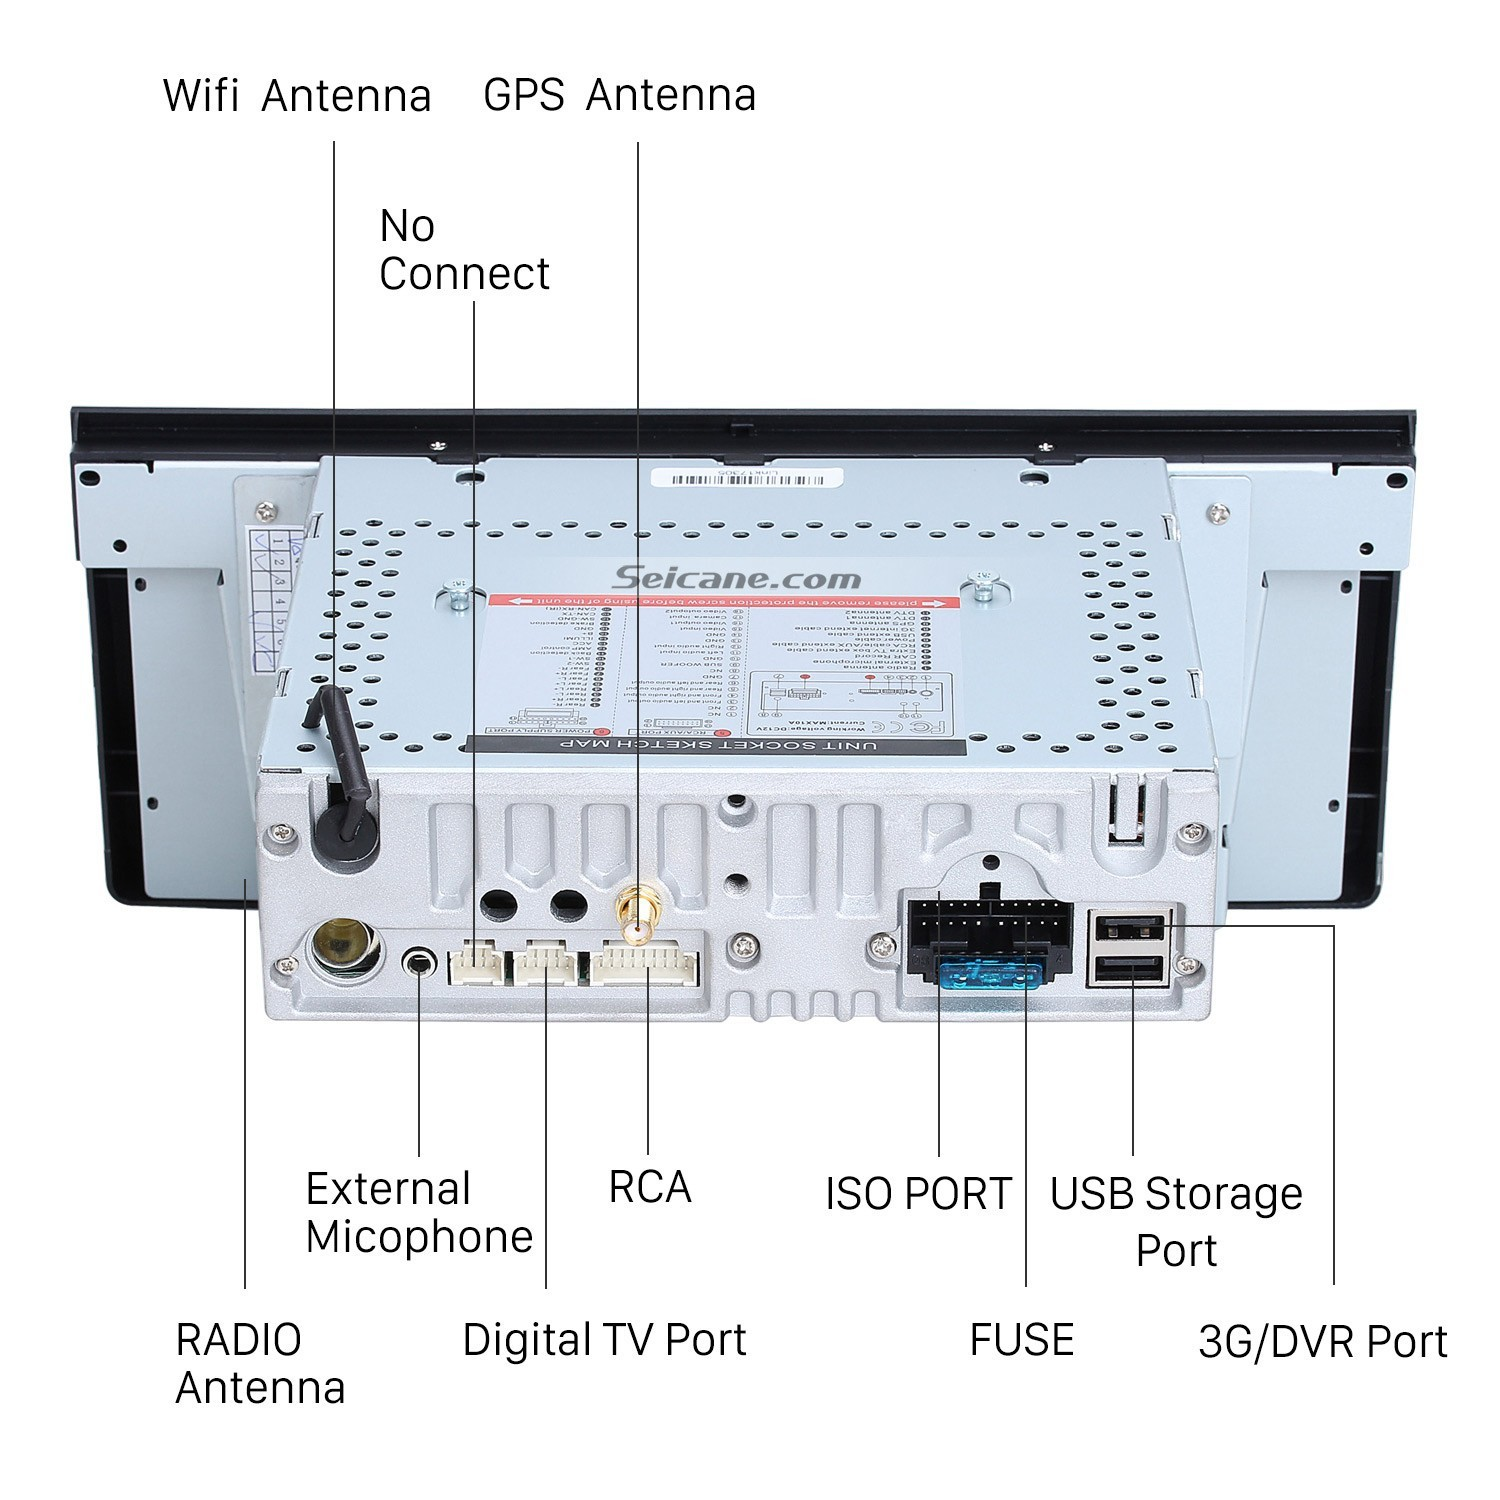 Control 4 Wiring Diagram Control 4 Wiring Download Of Control 4 Wiring Diagram